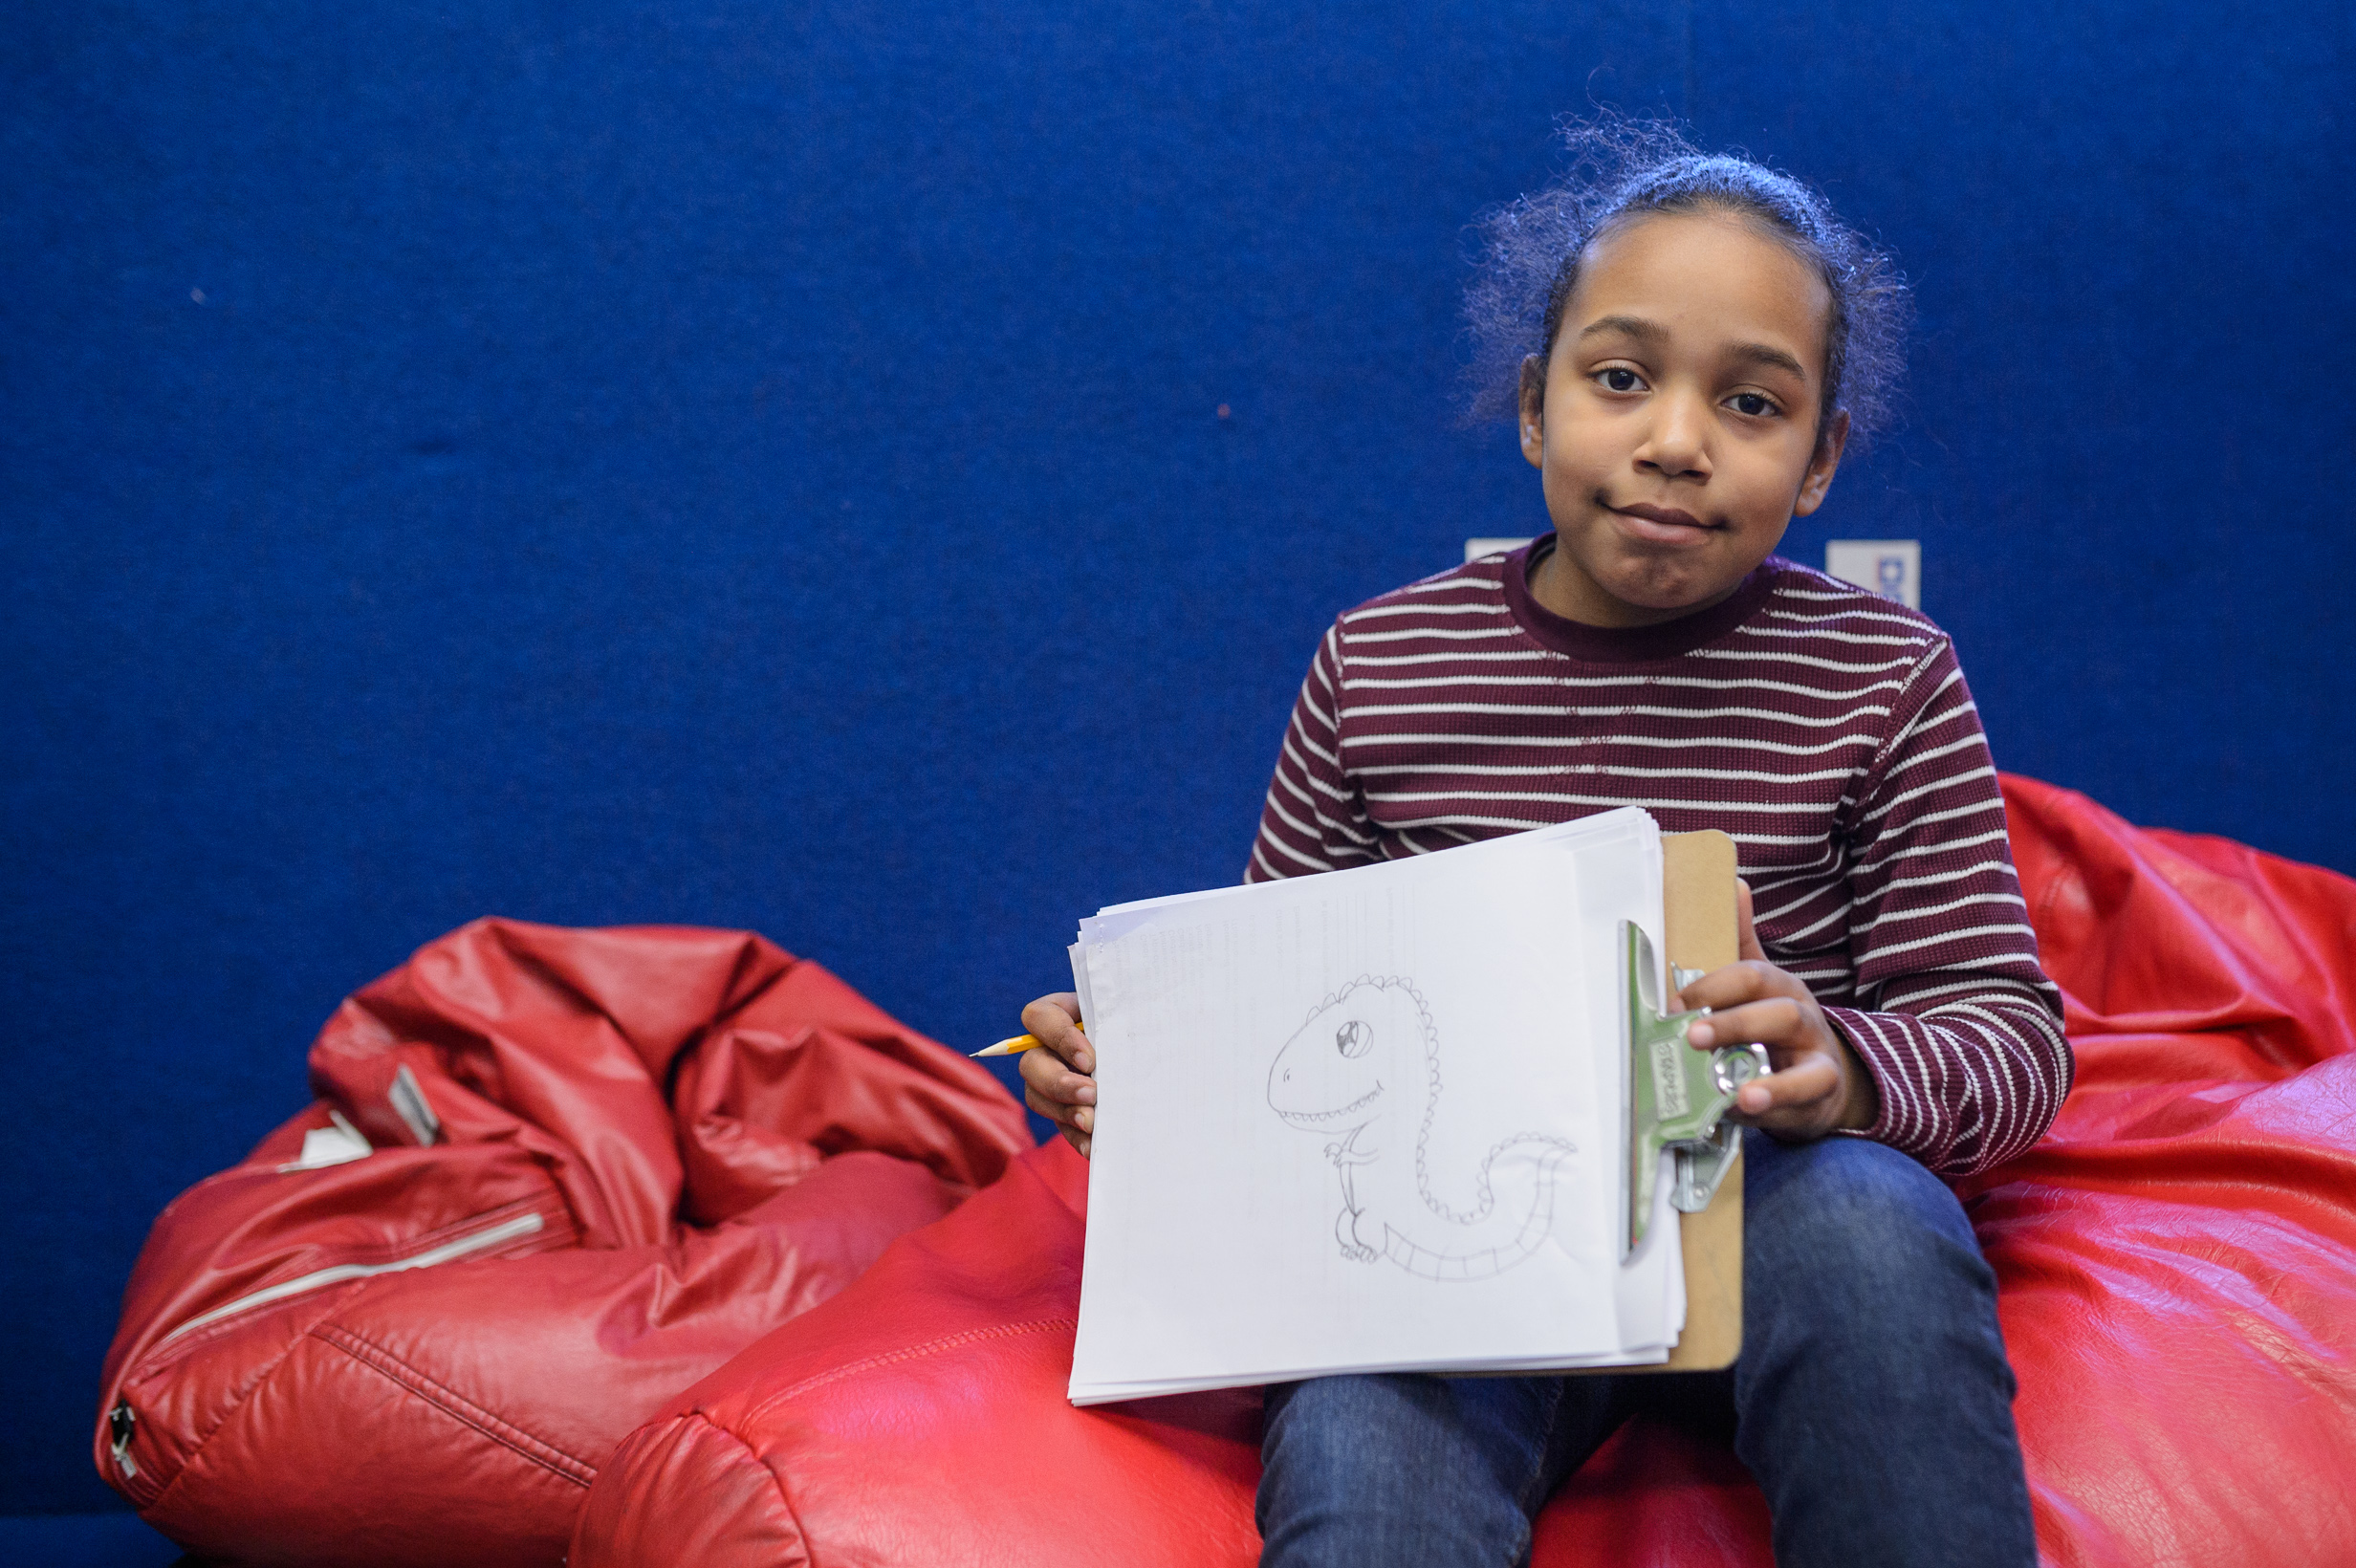 Young child shows off cool art drawing